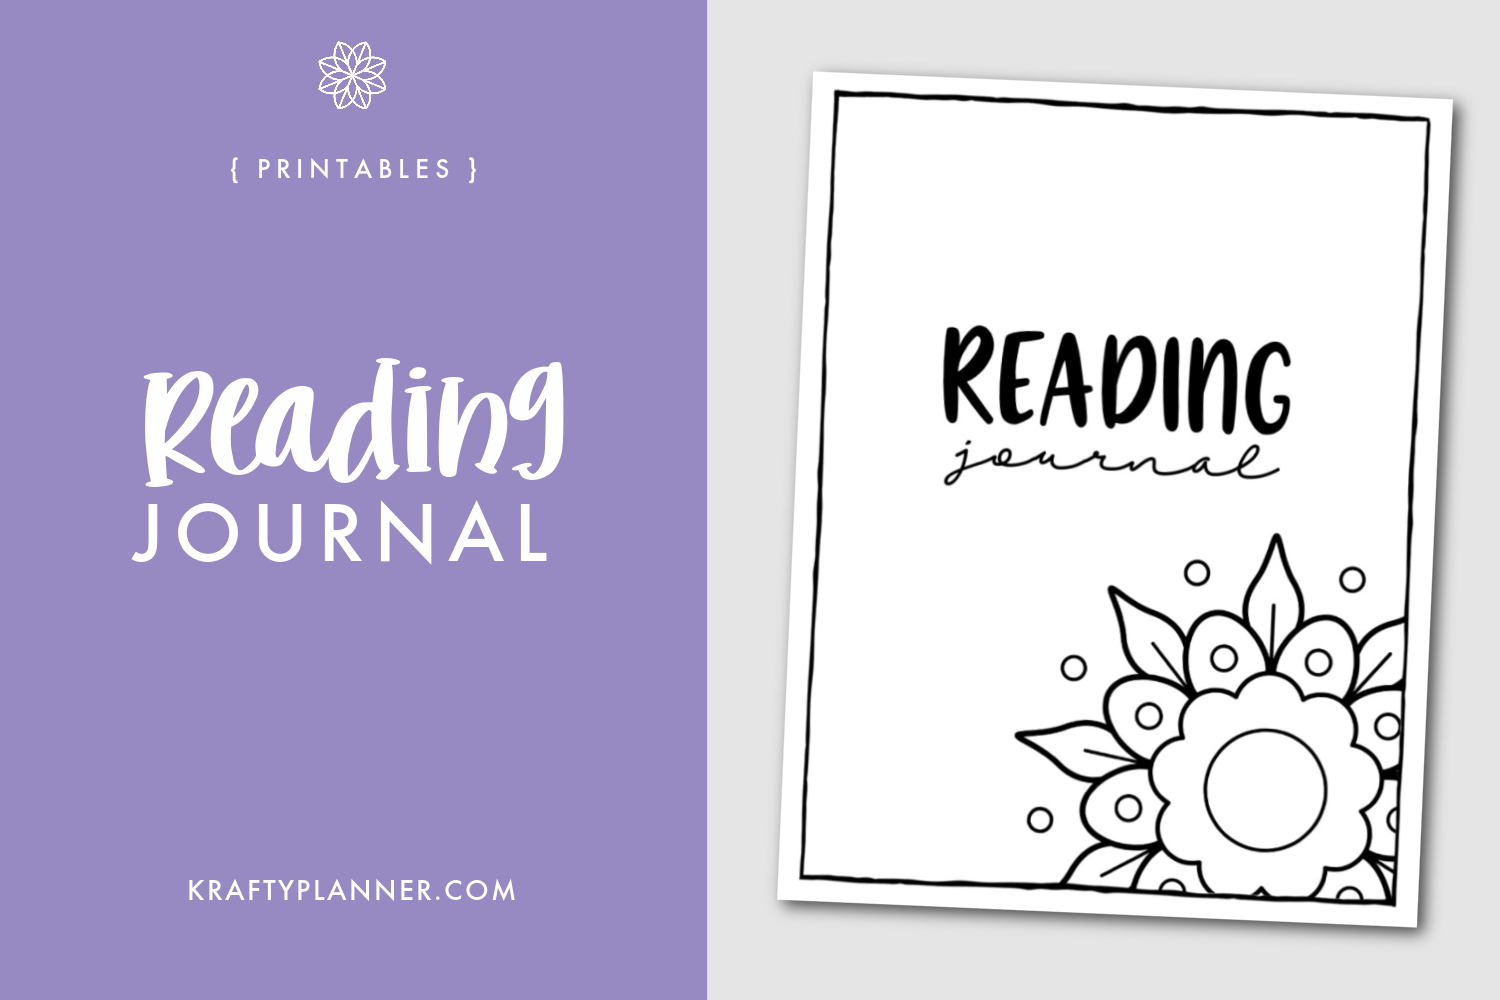 Printable Reading Journal Main Image copy.png